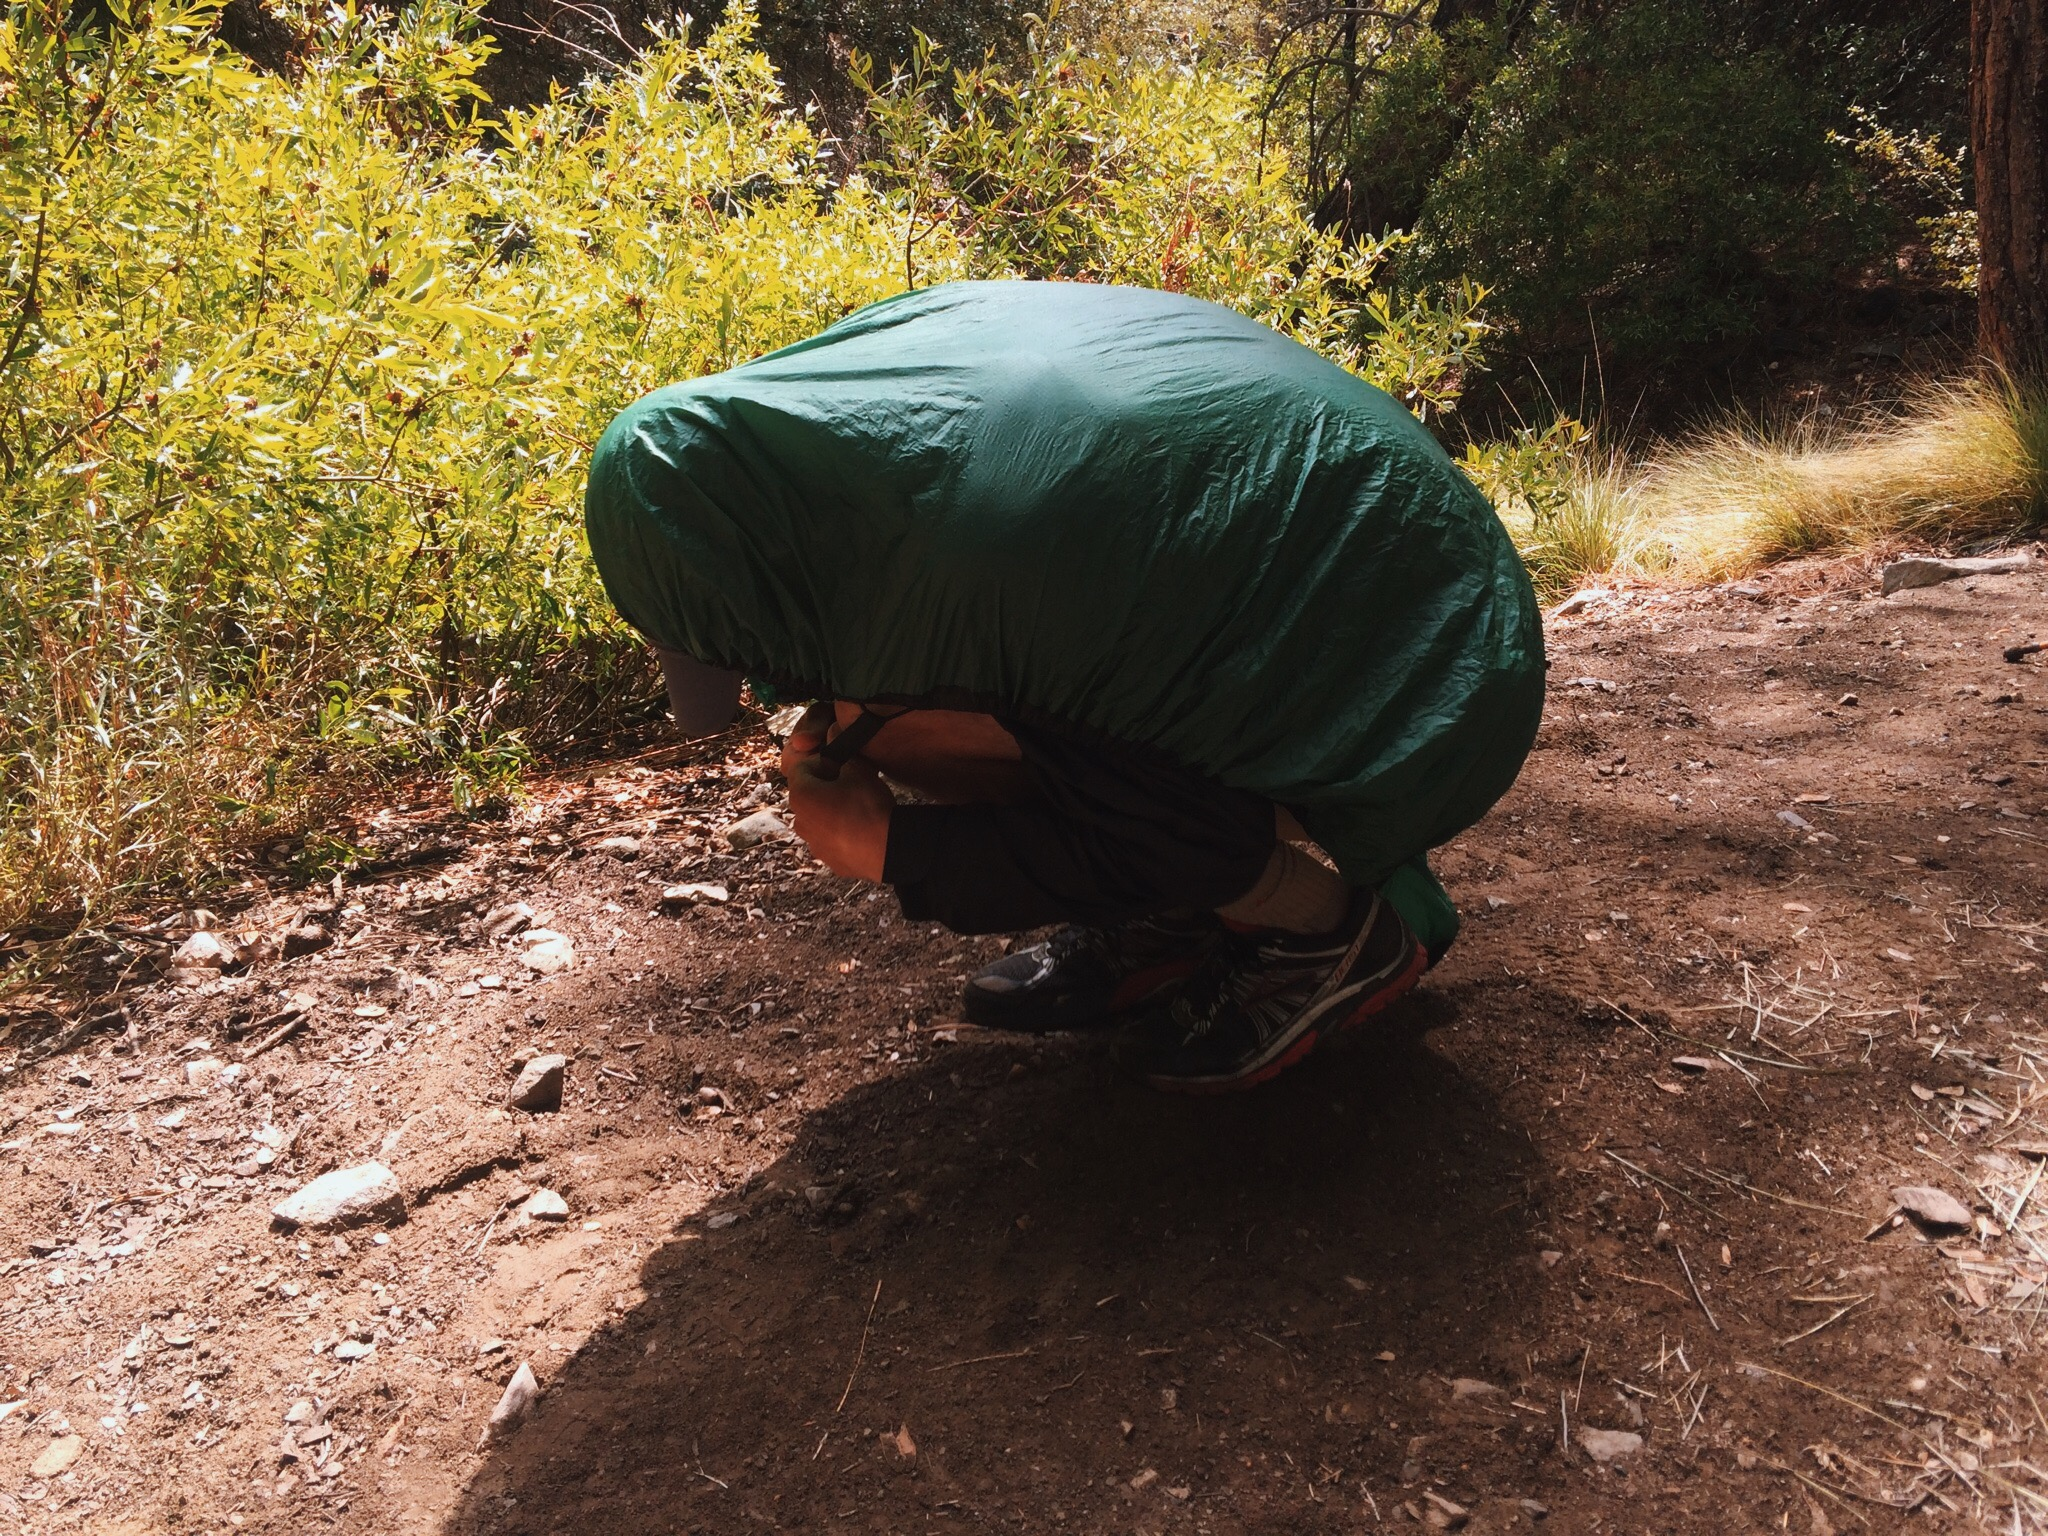 Honorable Mention: if all else fails, you can use your backpack's rain cover as a way to confuse wildlife and deter them from camp. (pictured: Stan the hiking man)